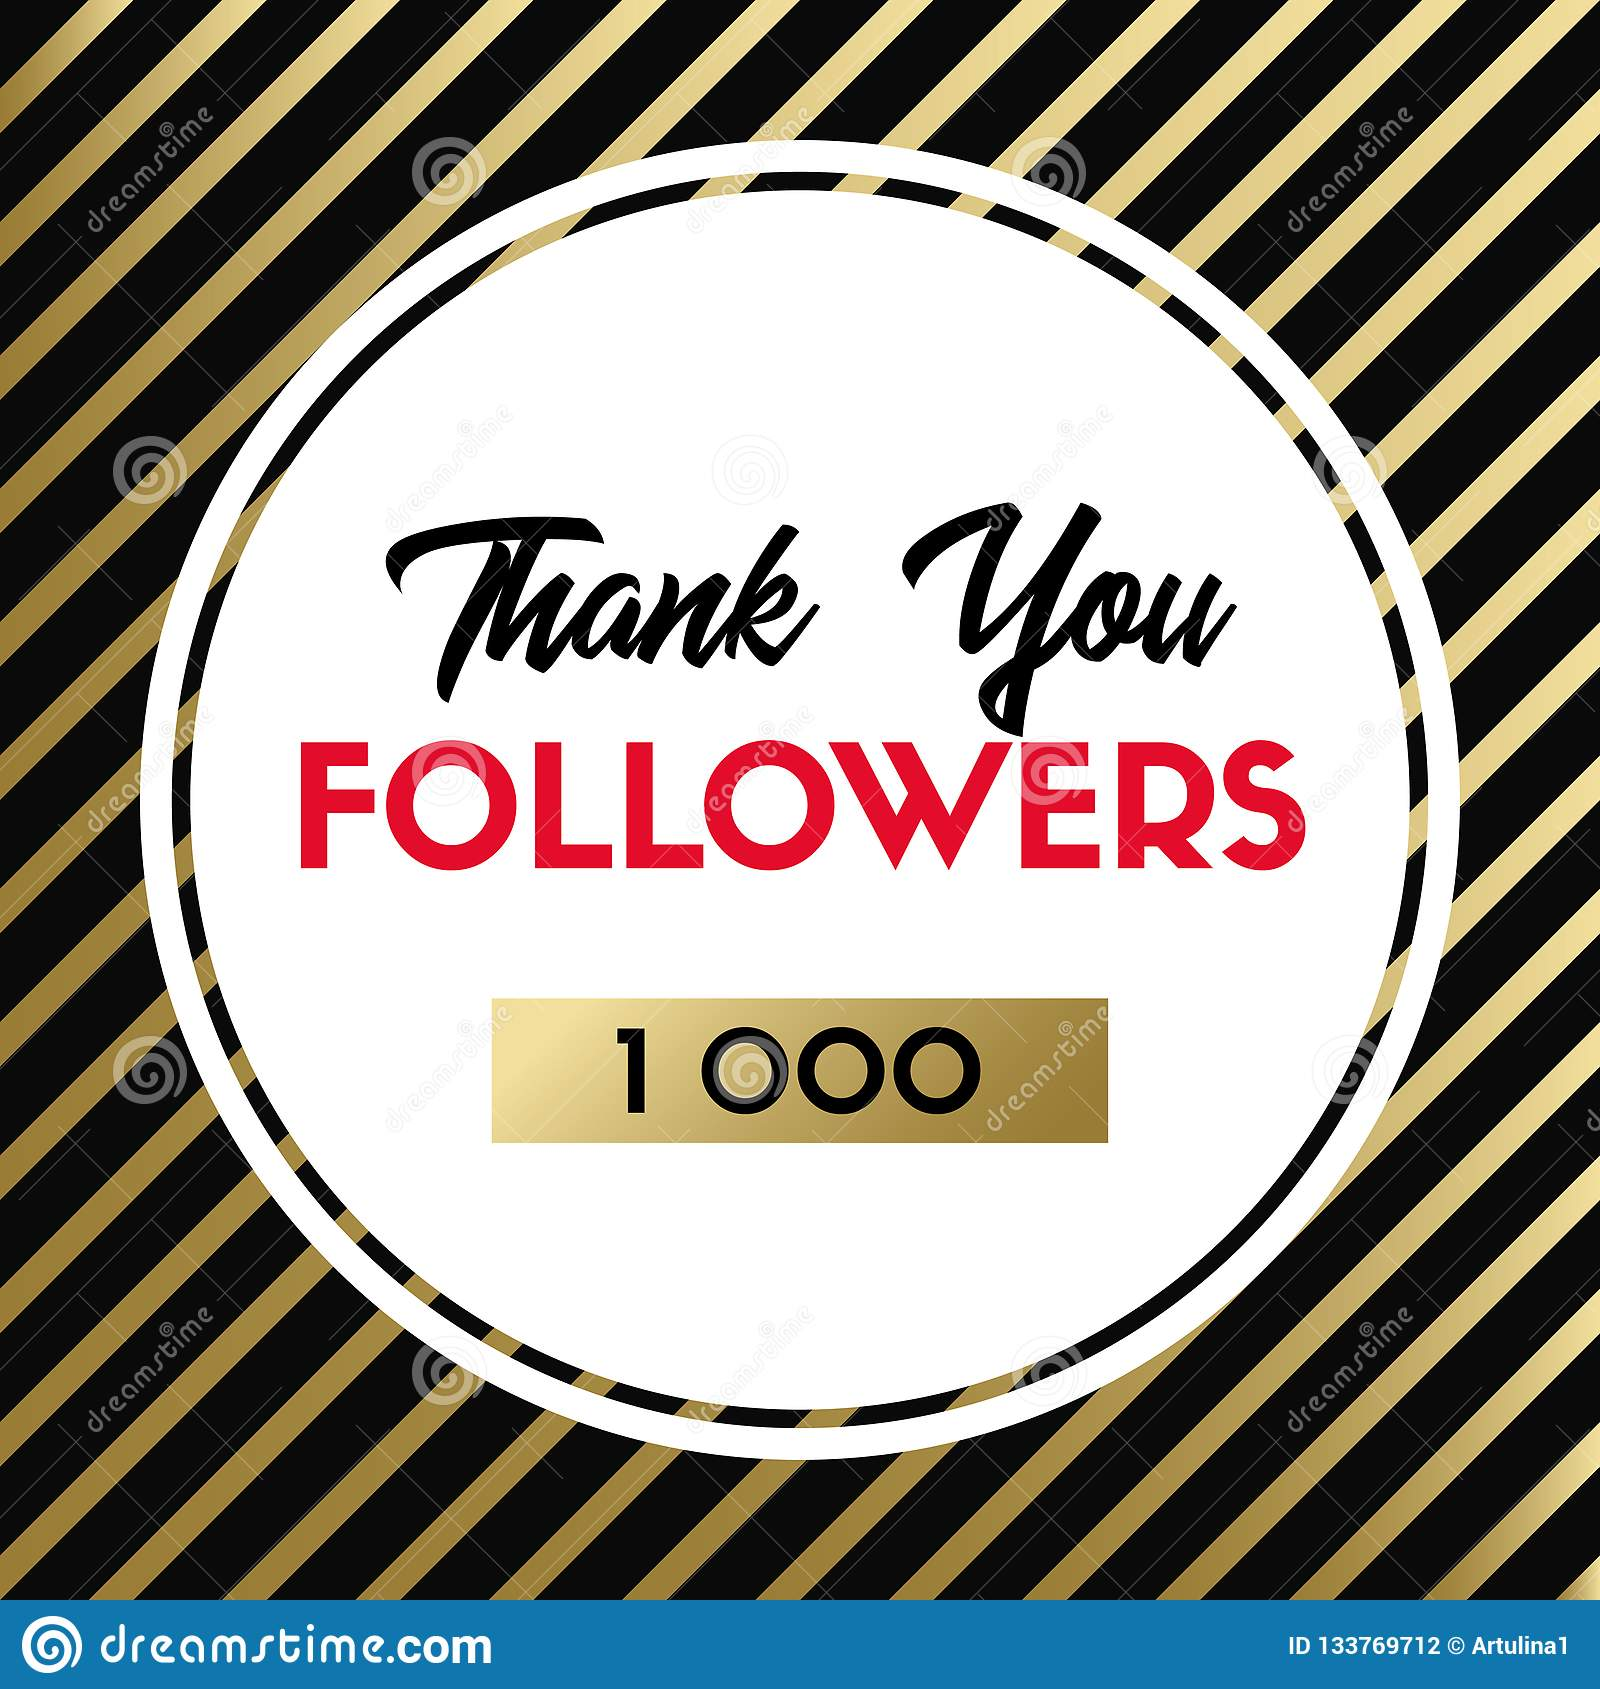 Thank you 1000 followers. Vector card for social media